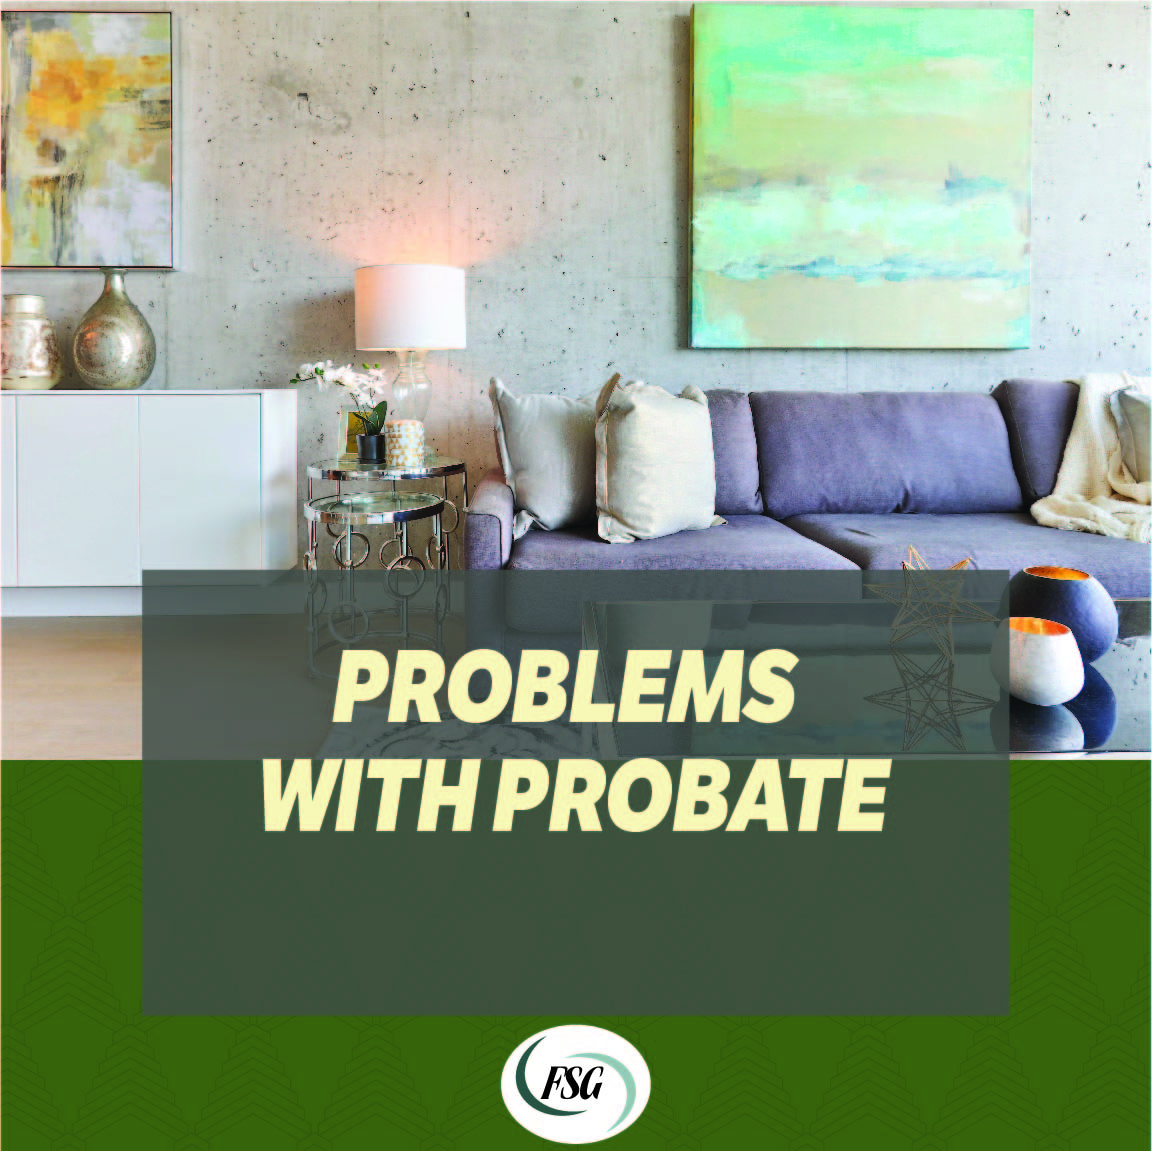 PROBLEMS WITH PROBATE